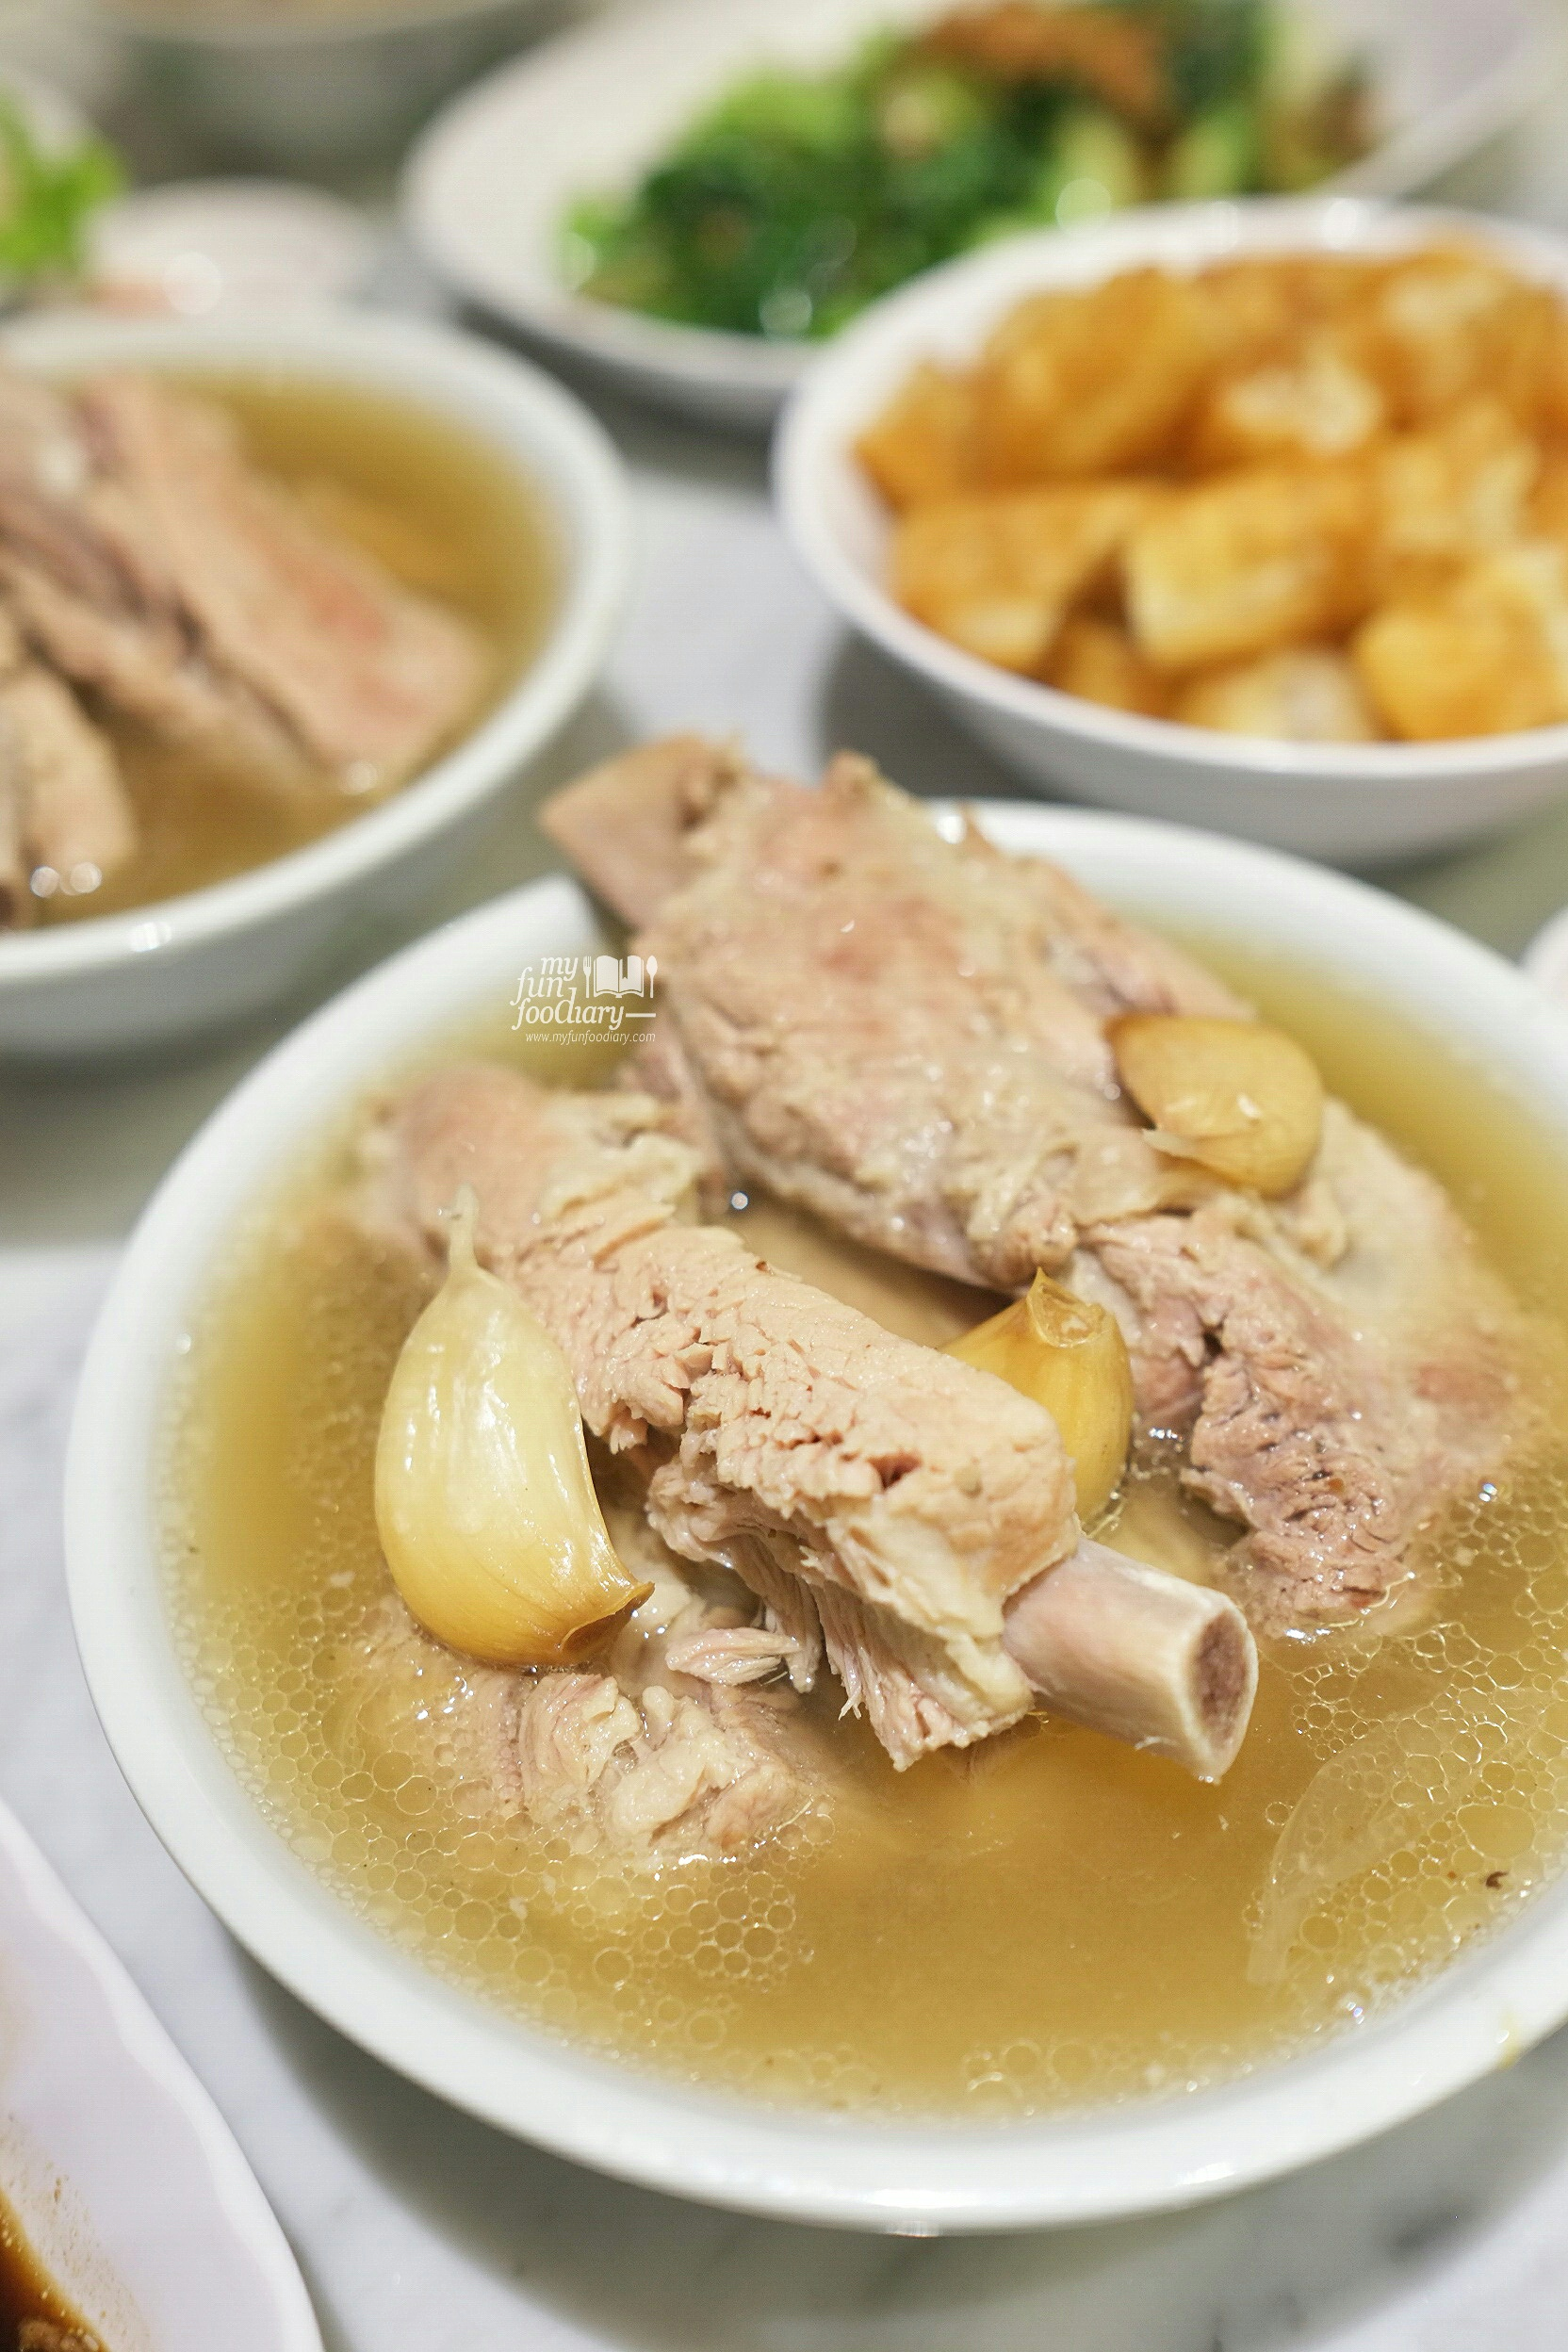 NEW BRANCH] Song Fa Bak Kut Teh at The Jayakarta Food Place, West ...